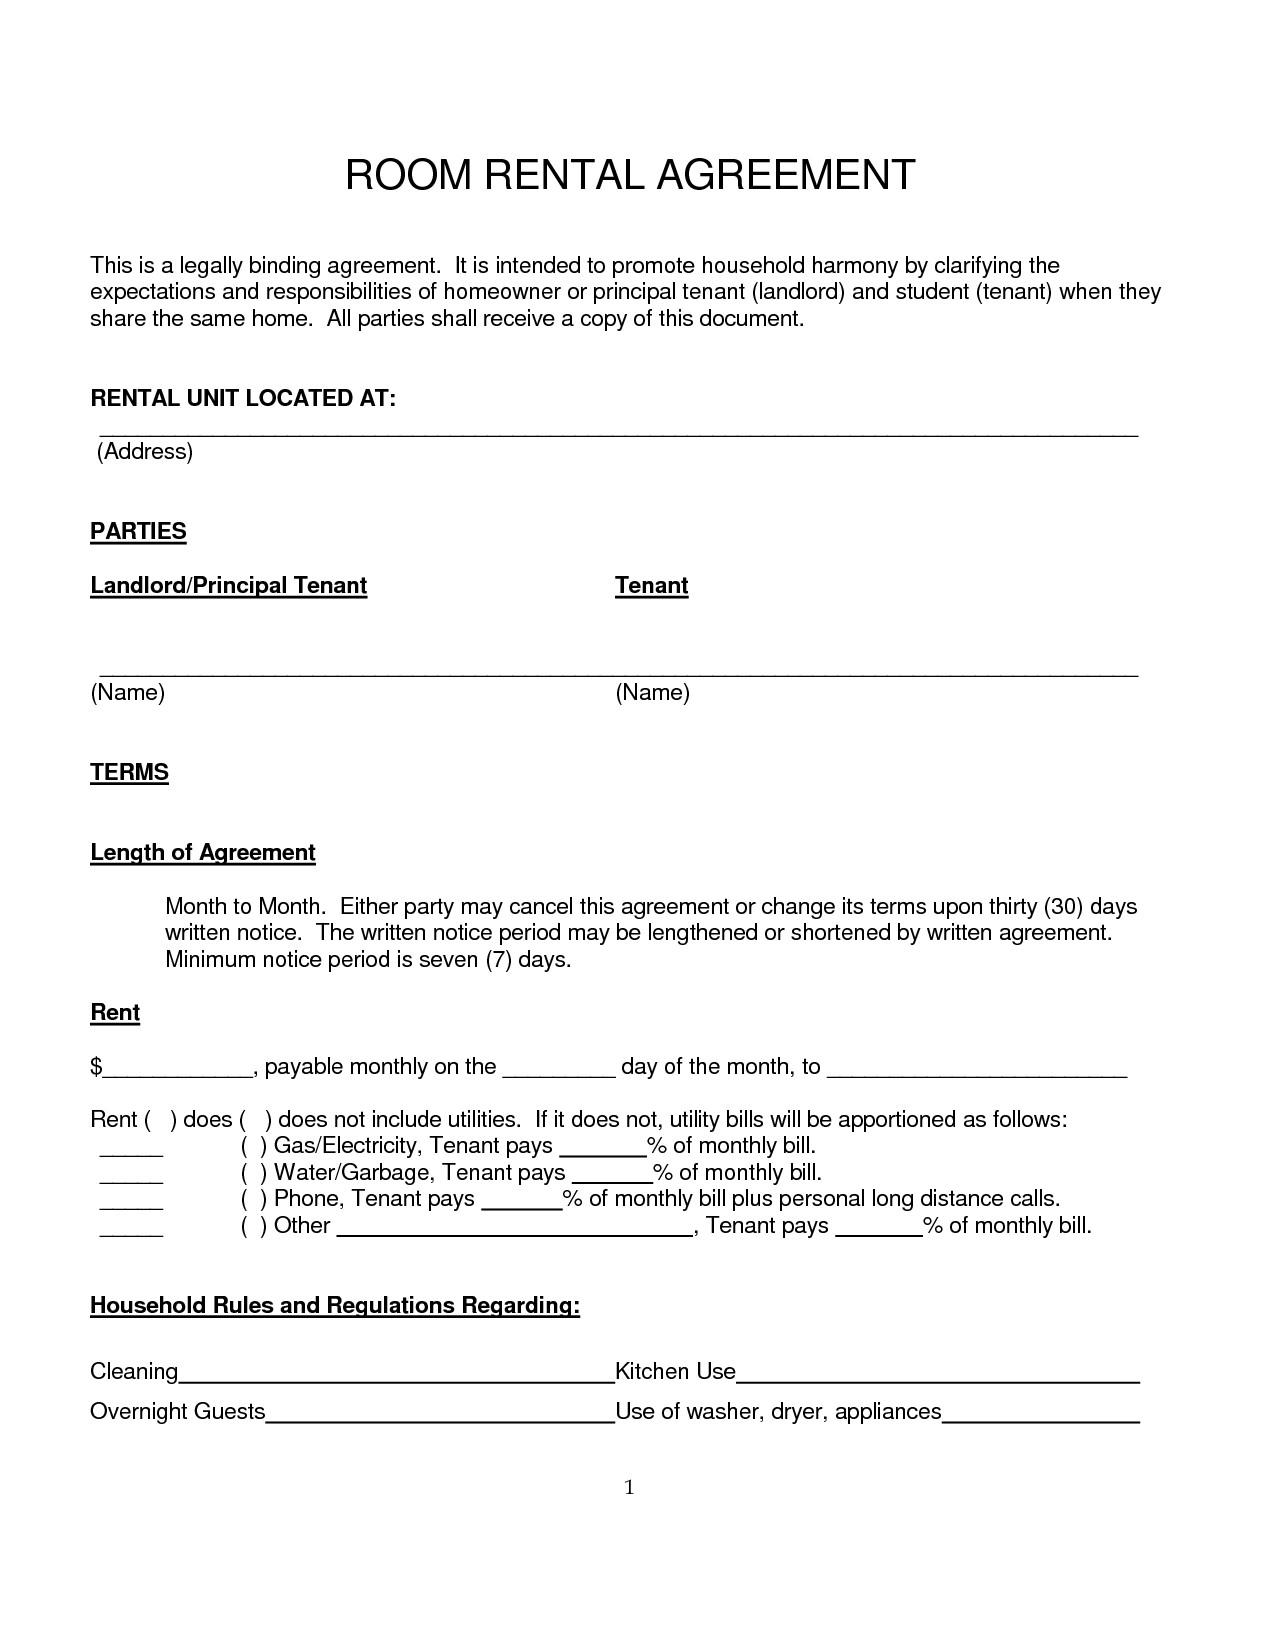 Basic Room Rental Agreement Template